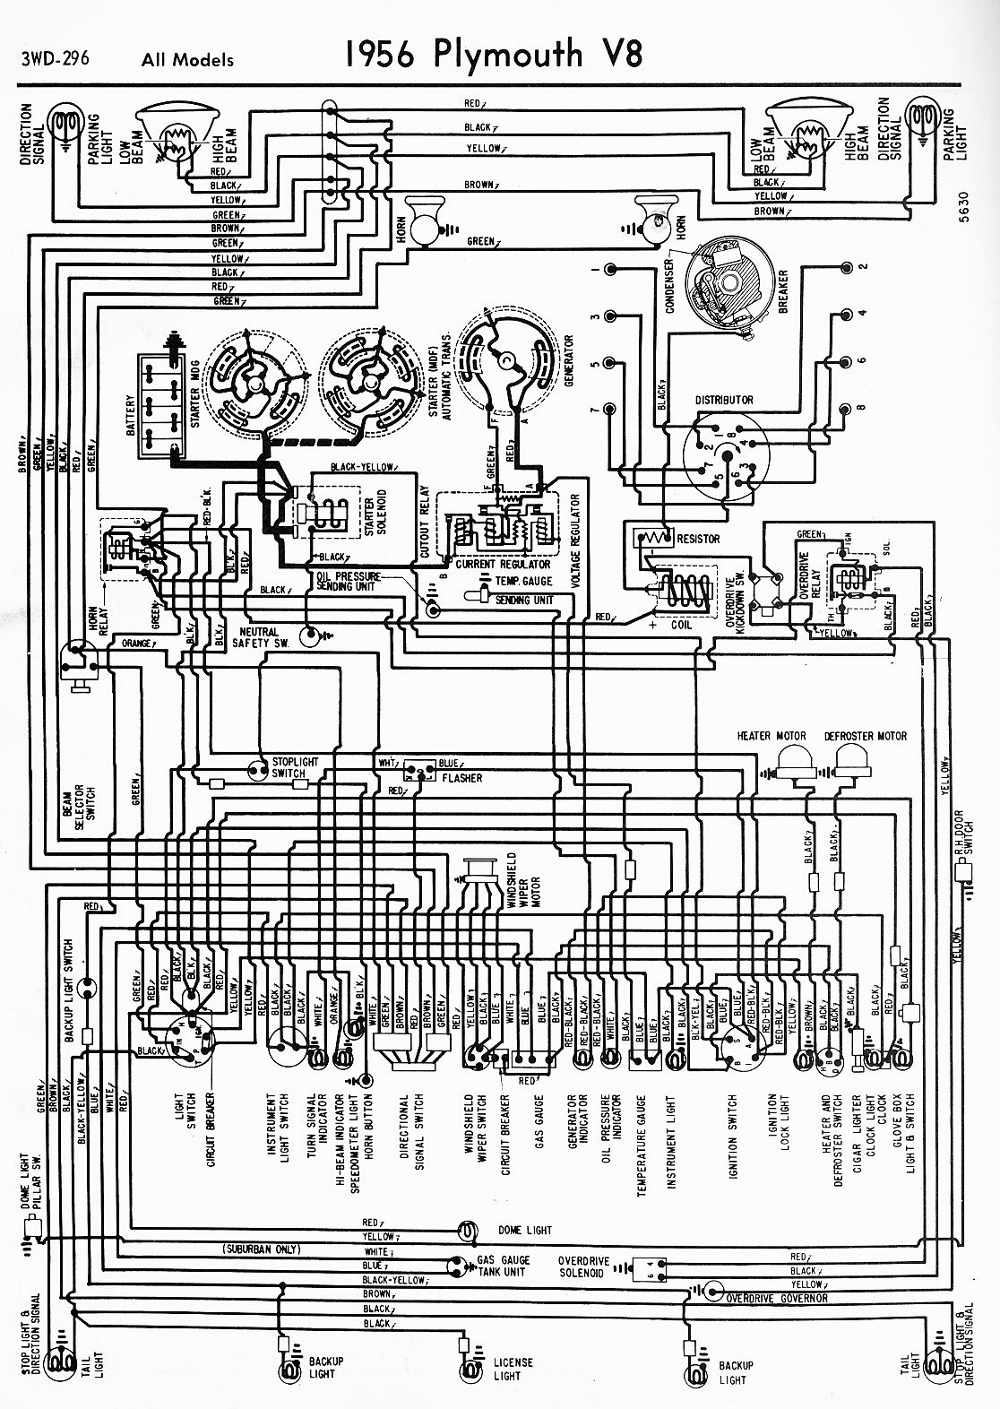 proa 1956 plymouth v8 all models wiring diagram 1956 plymouth v8 all models wiring diagram